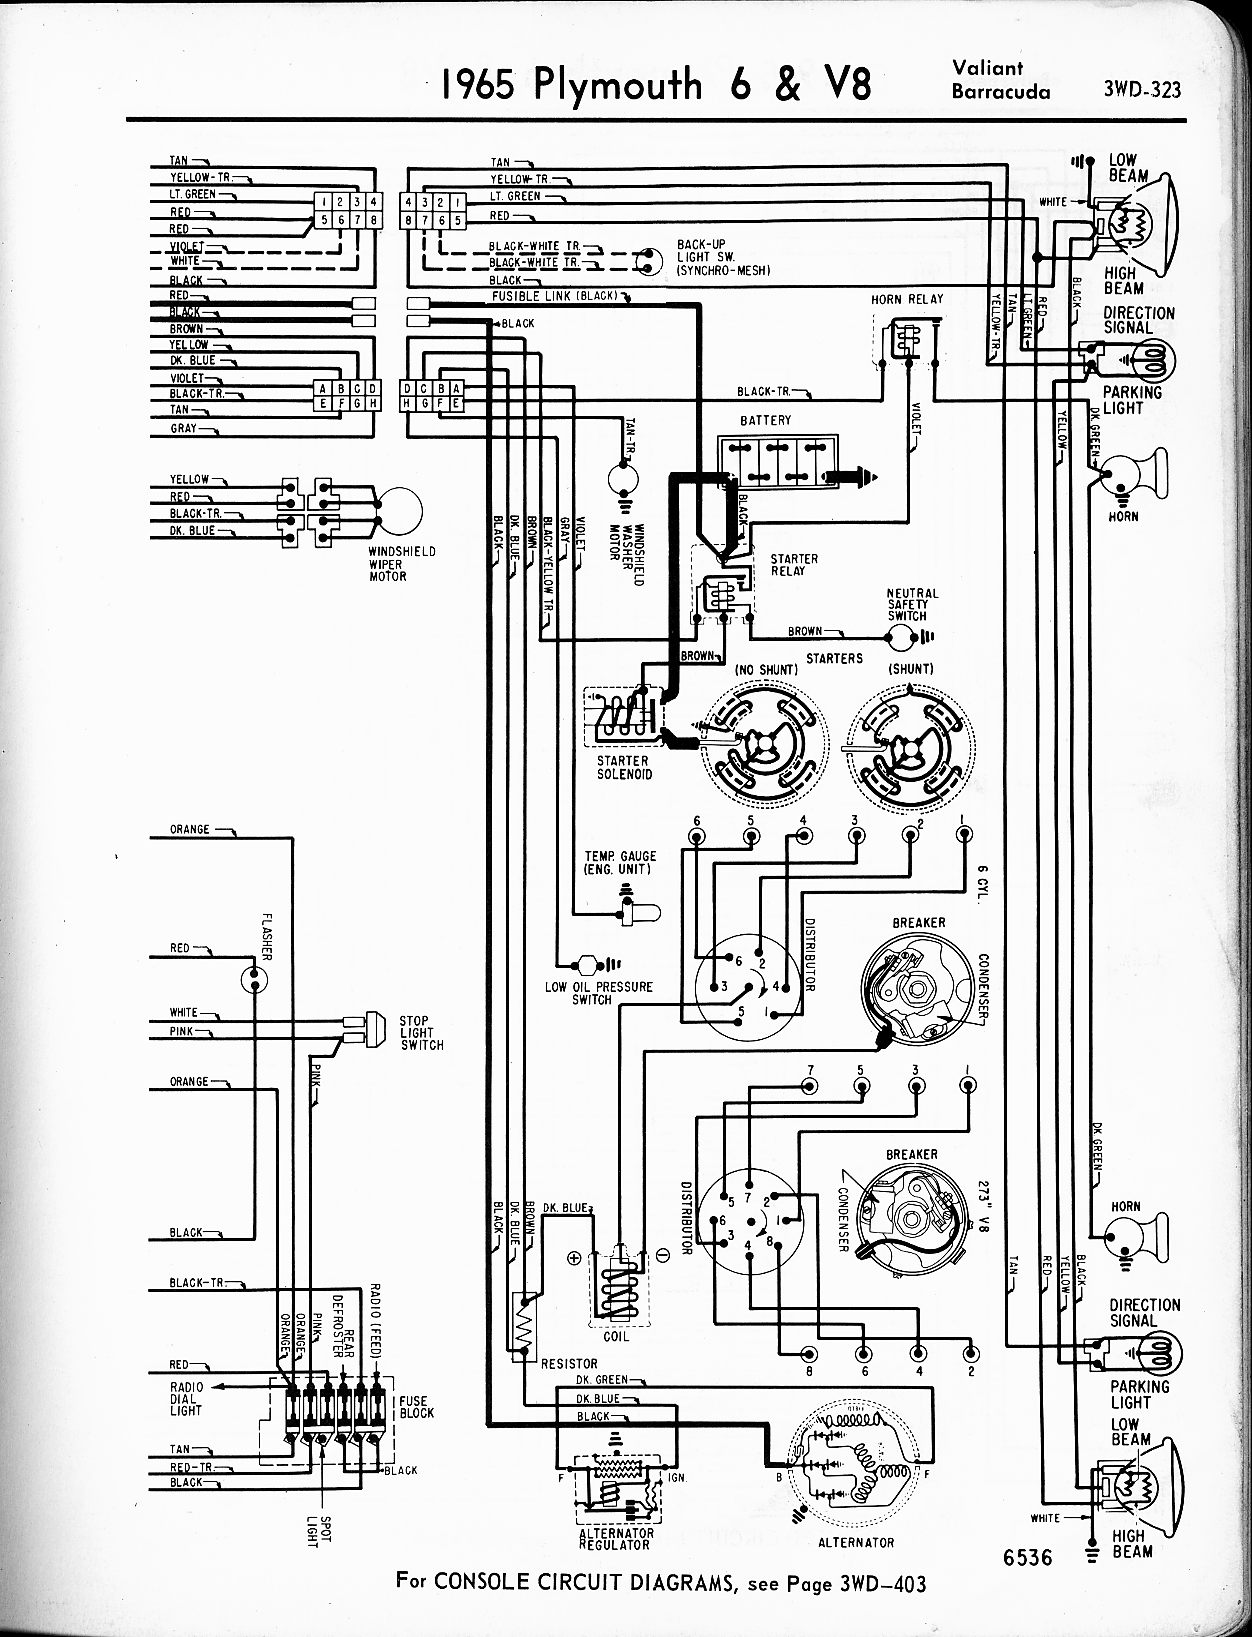 1956 1965 plymouth wiring the old car manual project positive ground plymouth wiring diagram 1965